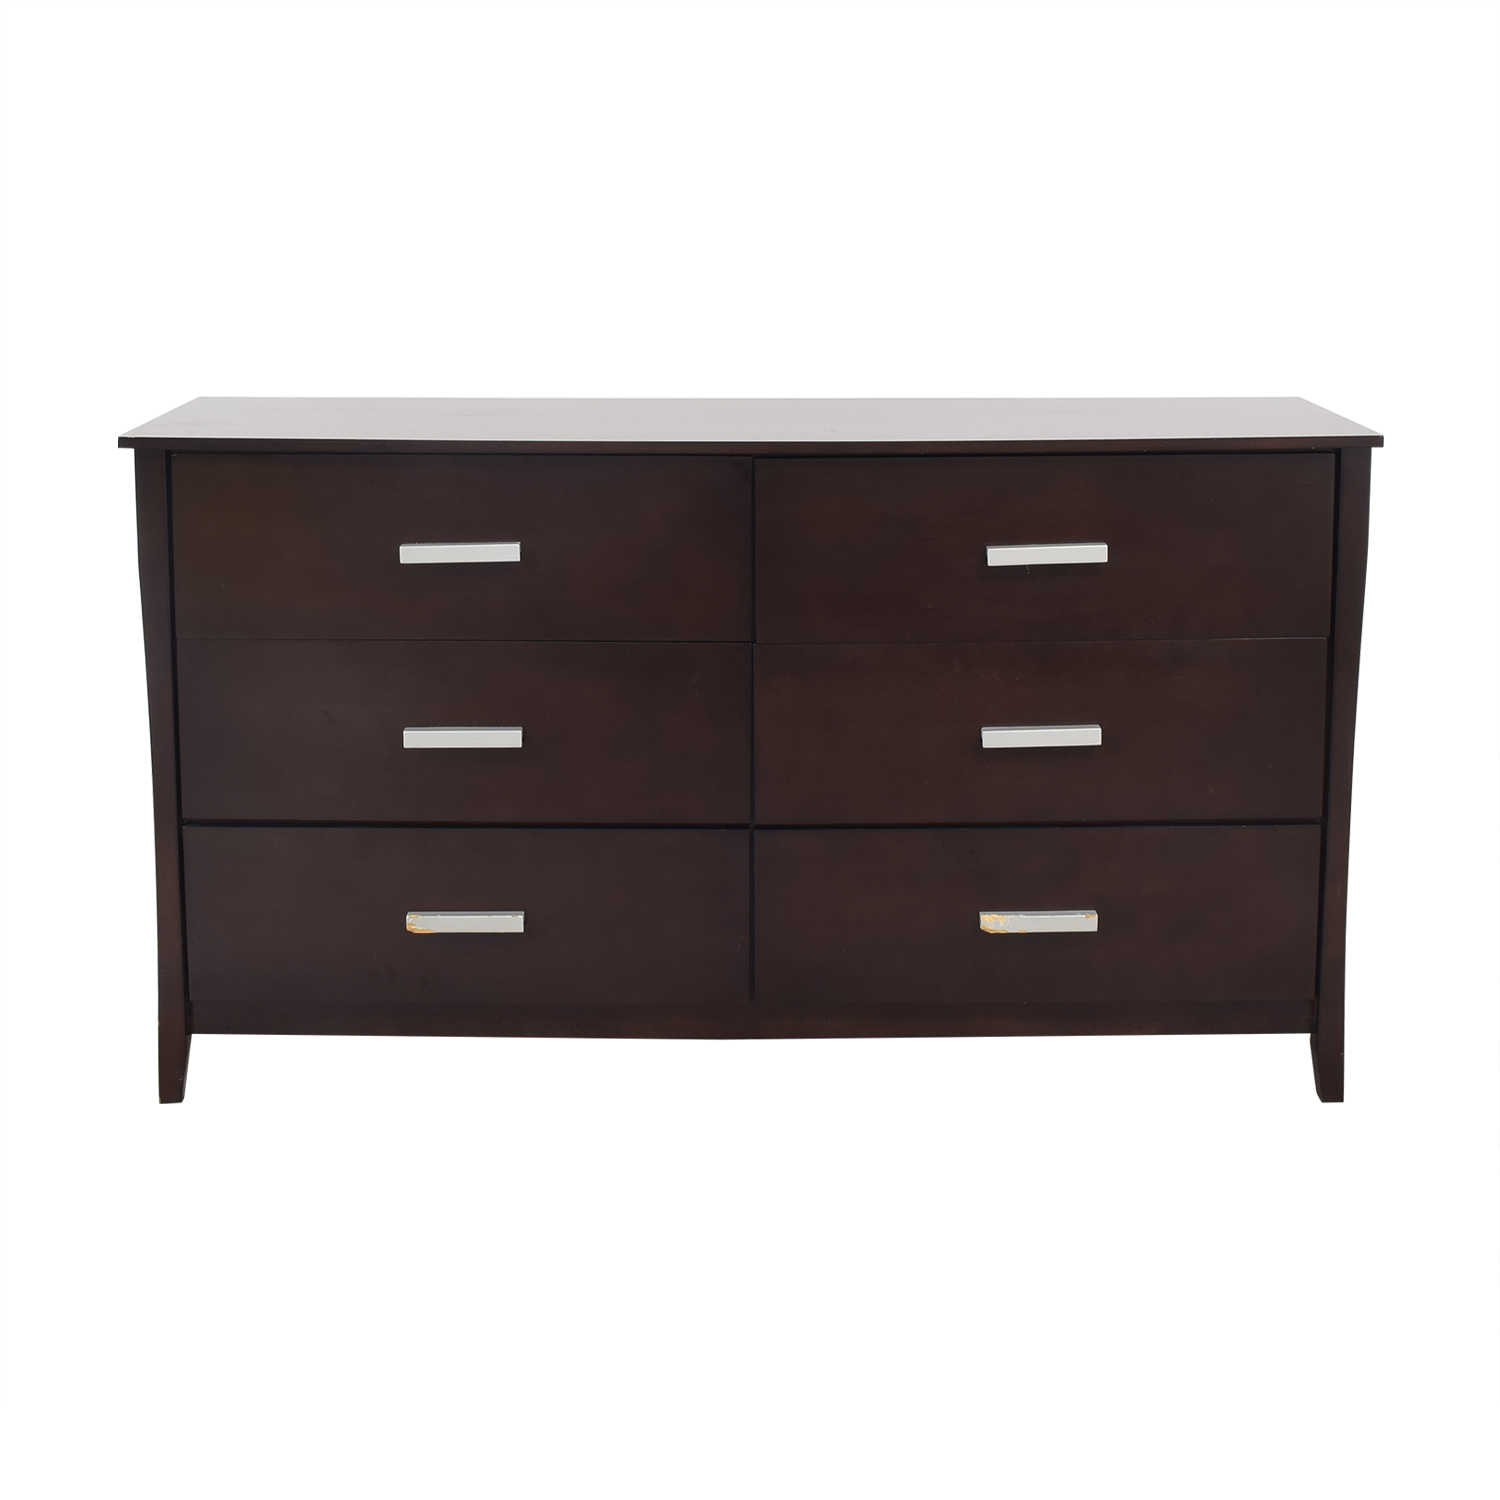 Coaster Fine Furniture Coaster Fine Furniture Six Drawer Dresser price